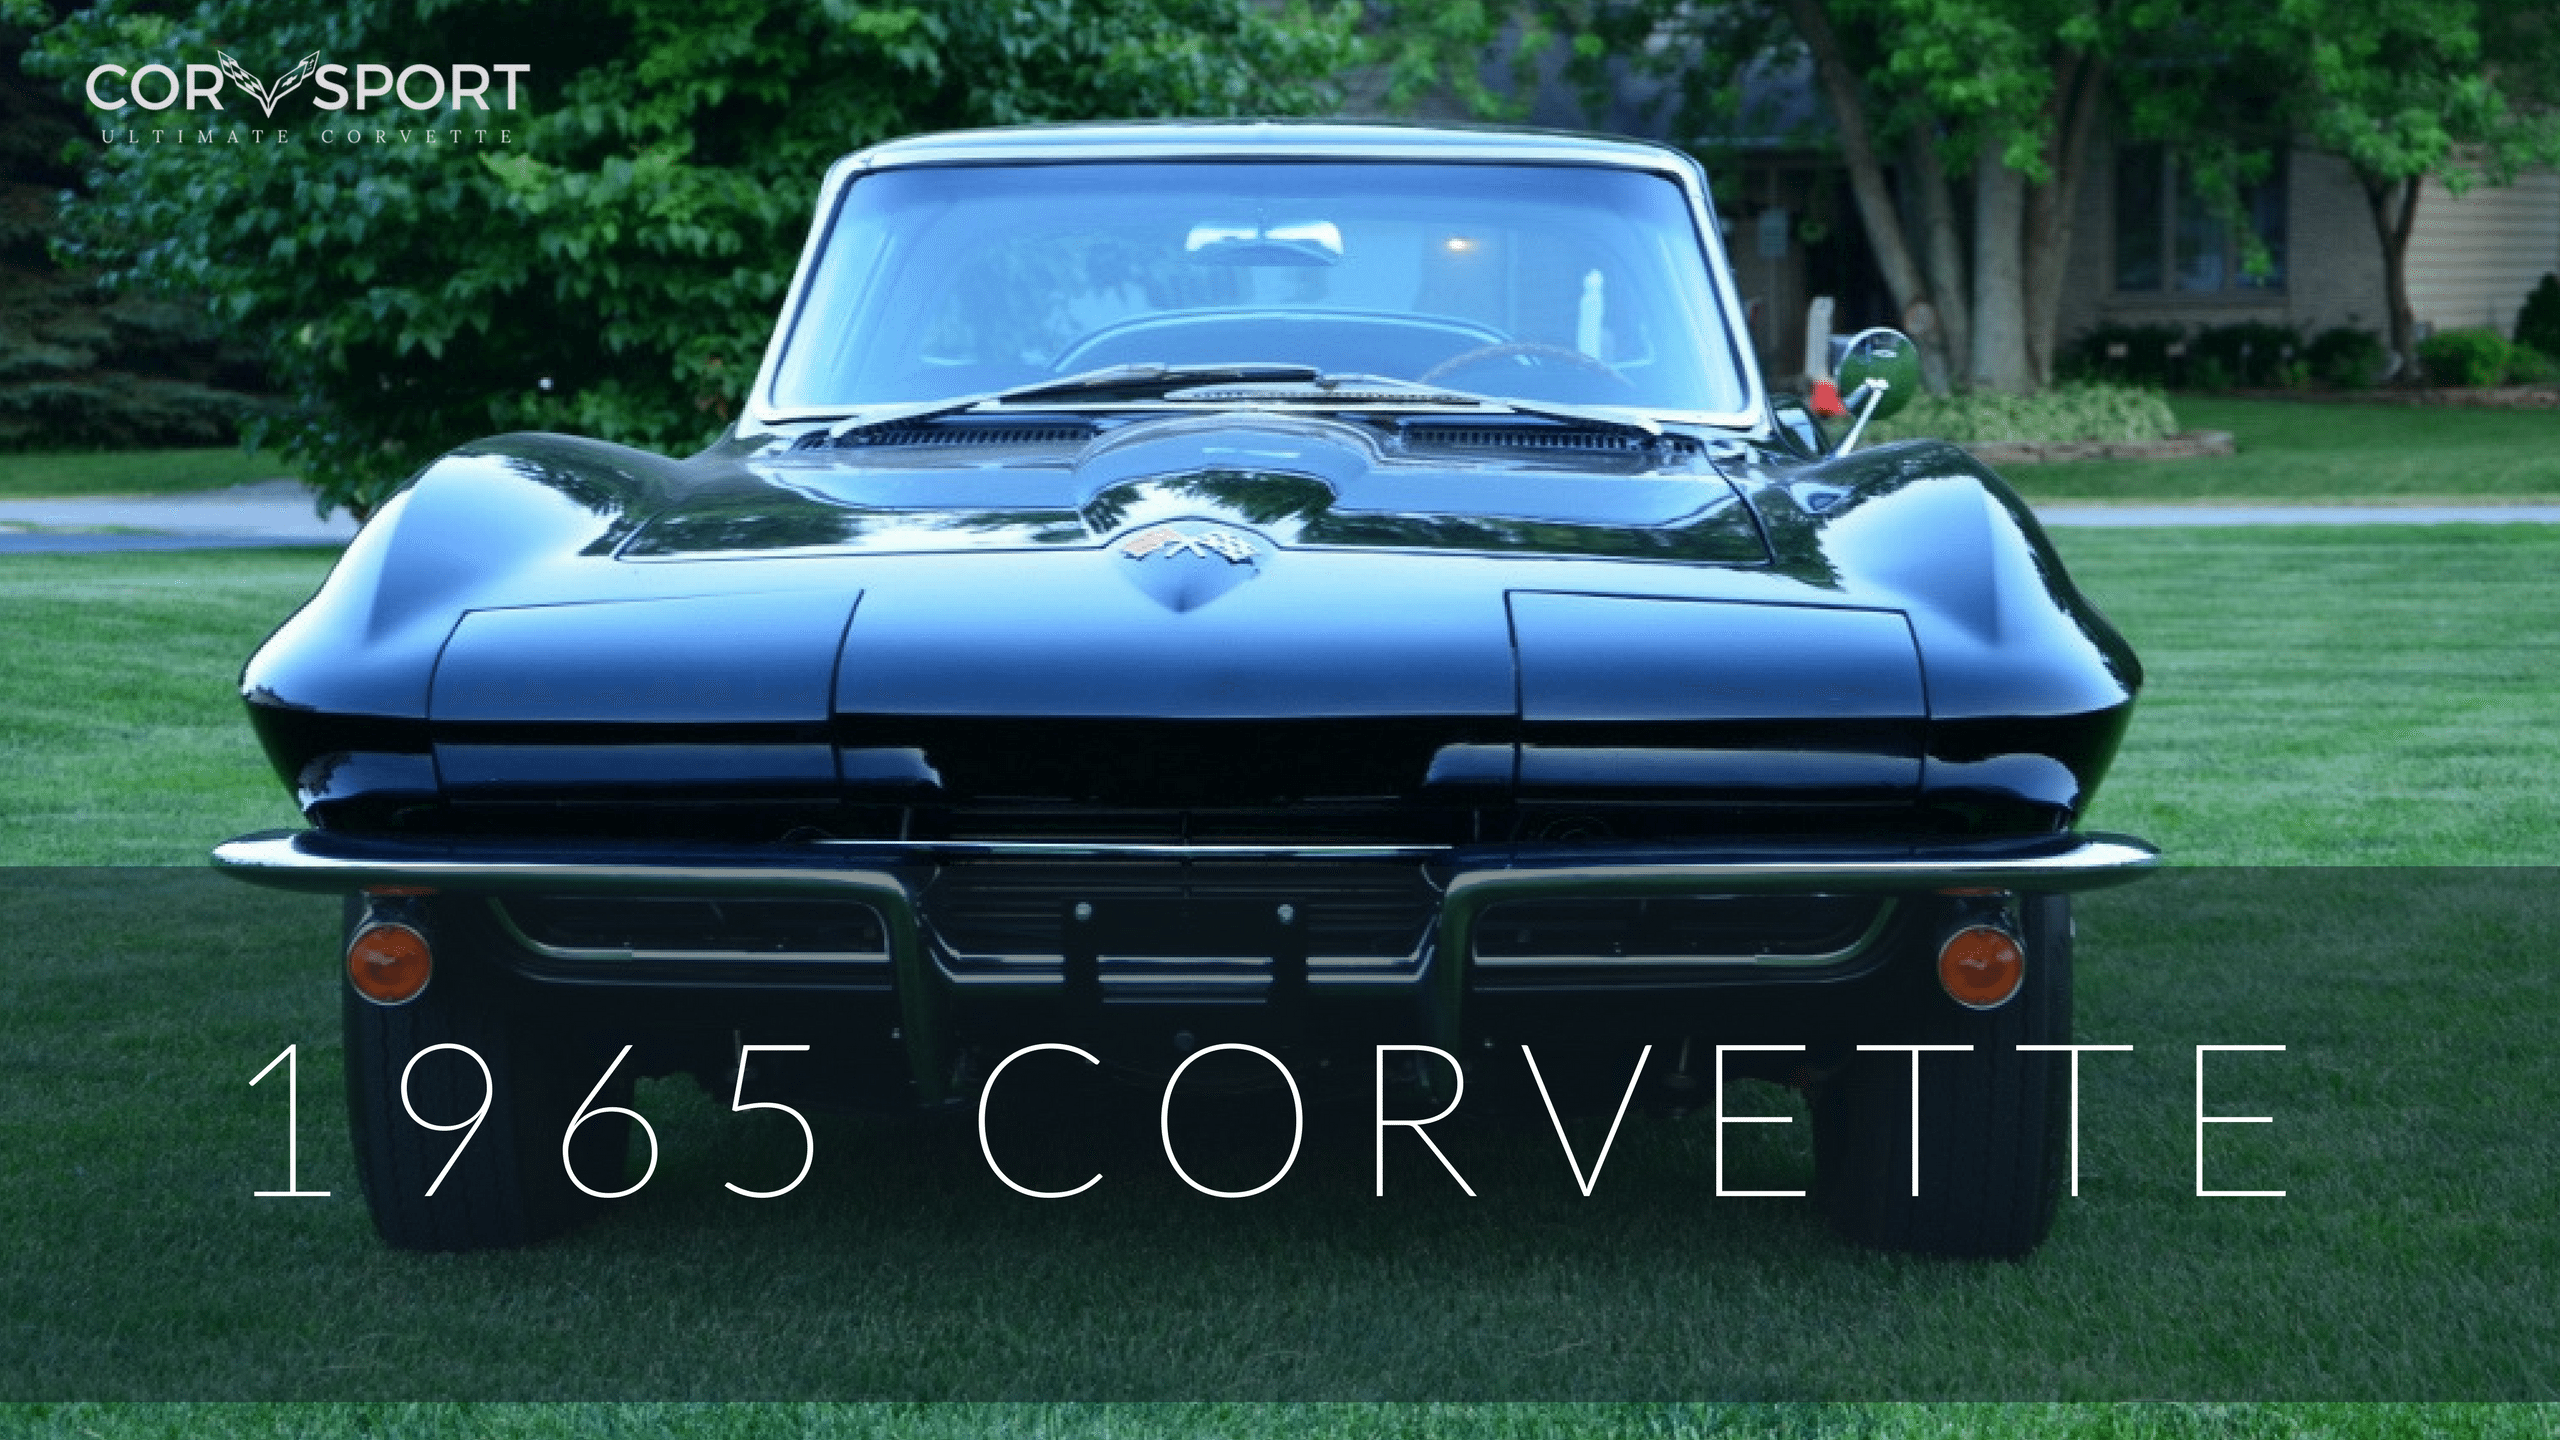 Corvette Models - Full List of Chevrolet Corvette Models & Years